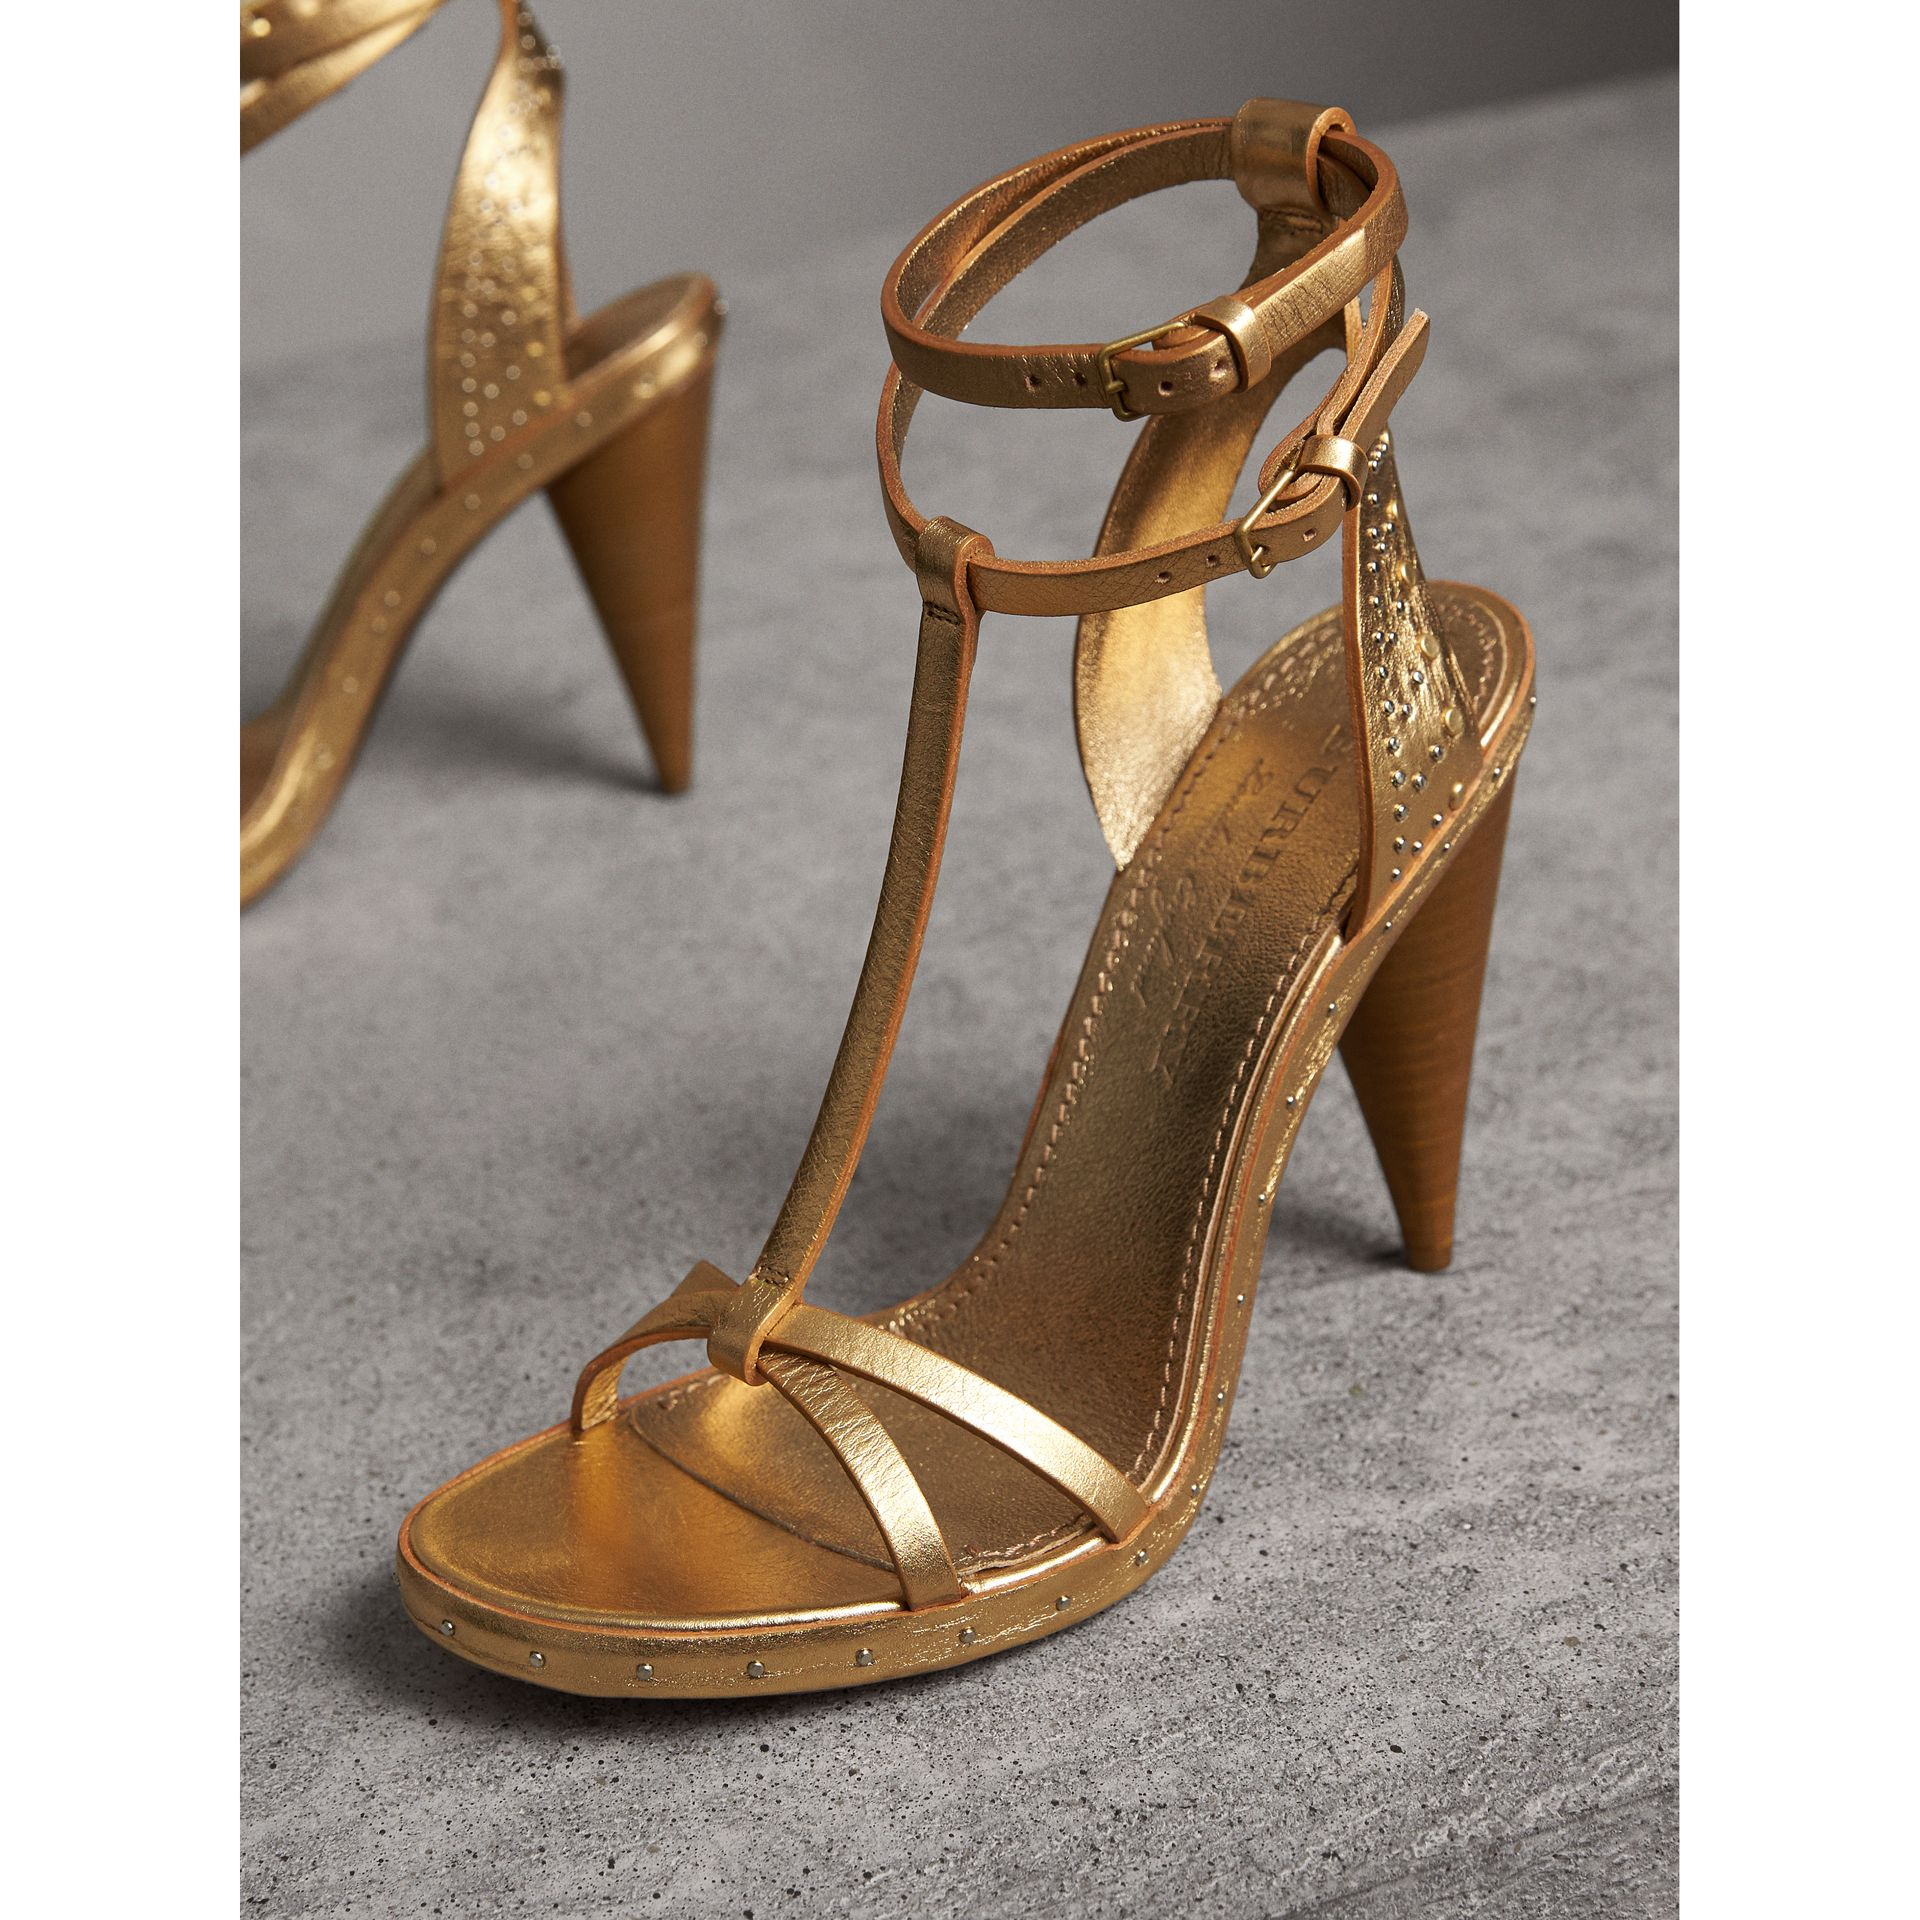 Riveted Metallic Leather Cone-heel Sandals in Gold | Burberry - gallery image 5